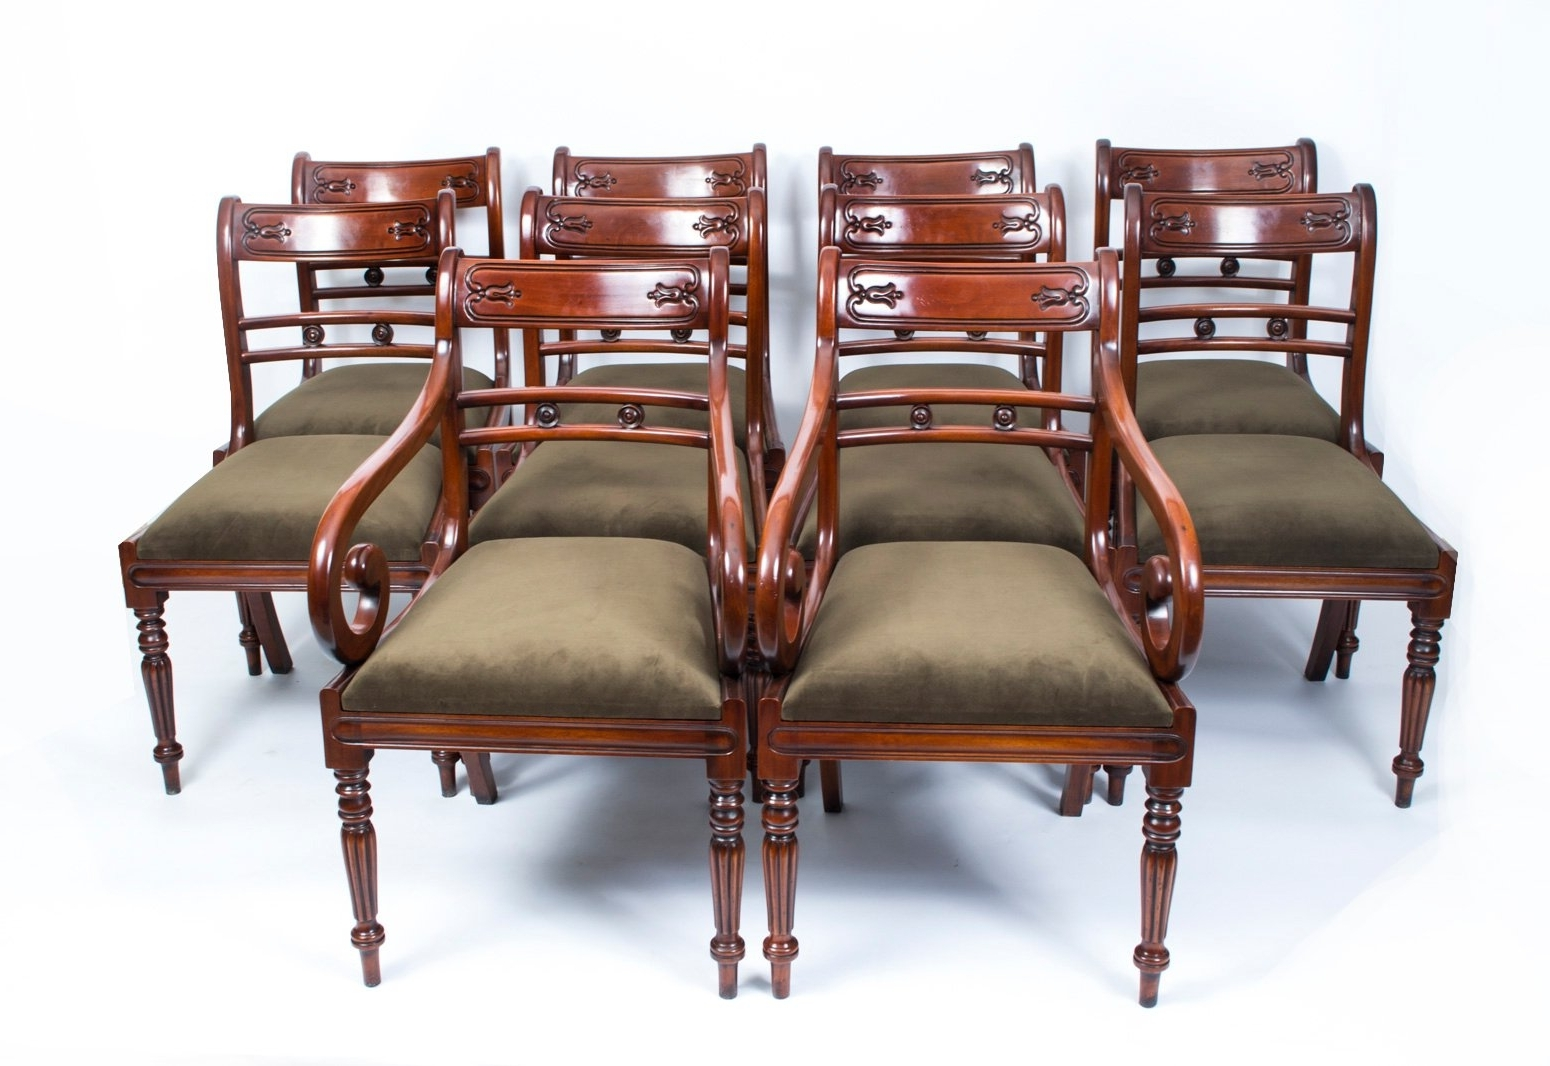 Mahogany Dining Tables Sets For Most Popular 19Th Century Victorian Flame Mahogany Dining Table And 14 Chairs For (View 13 of 25)